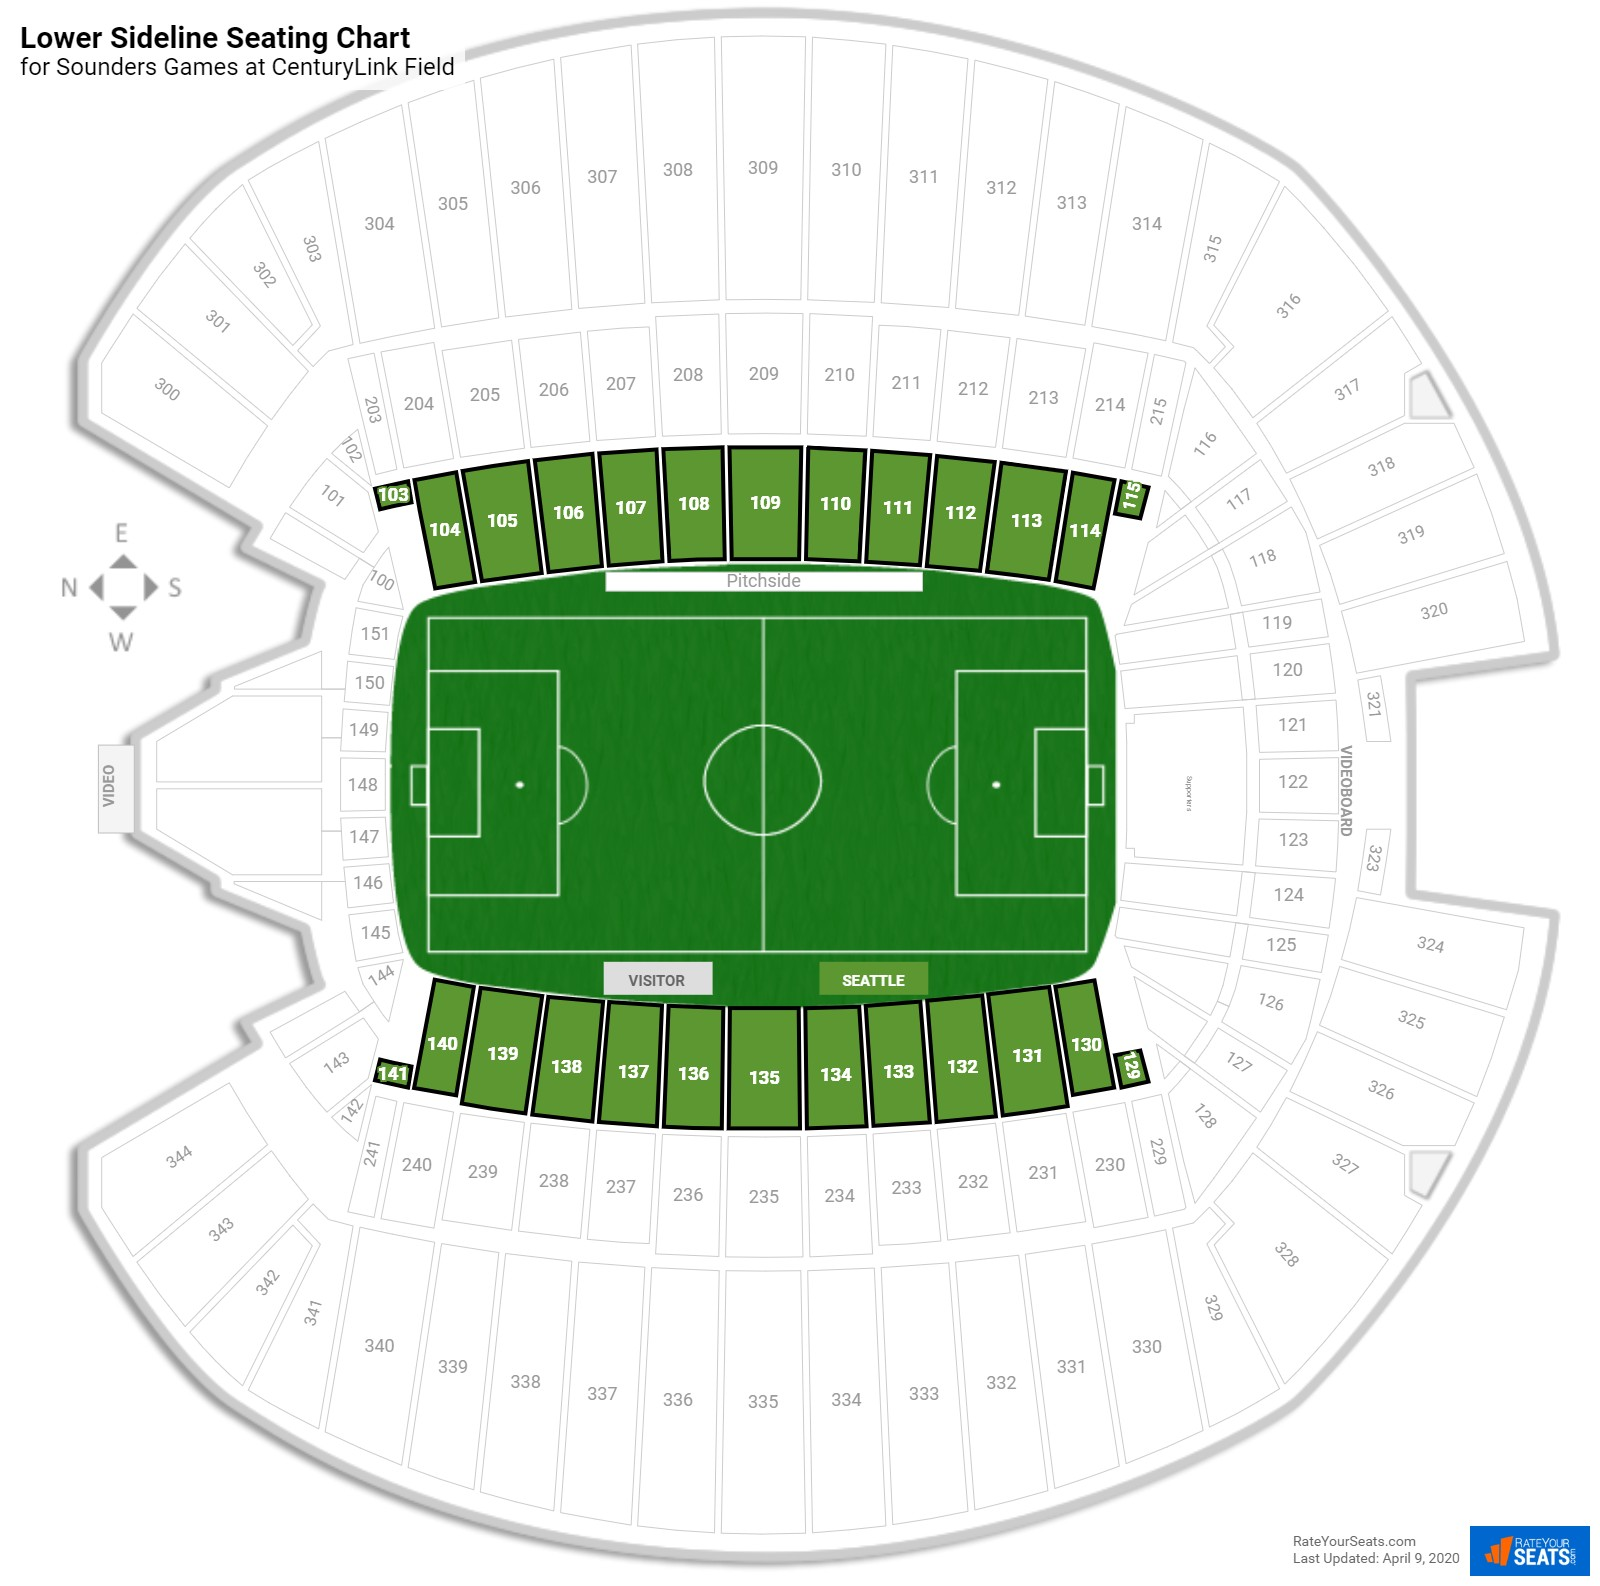 CenturyLink Field Soccer Seating Guide - RateYourSeats.com on